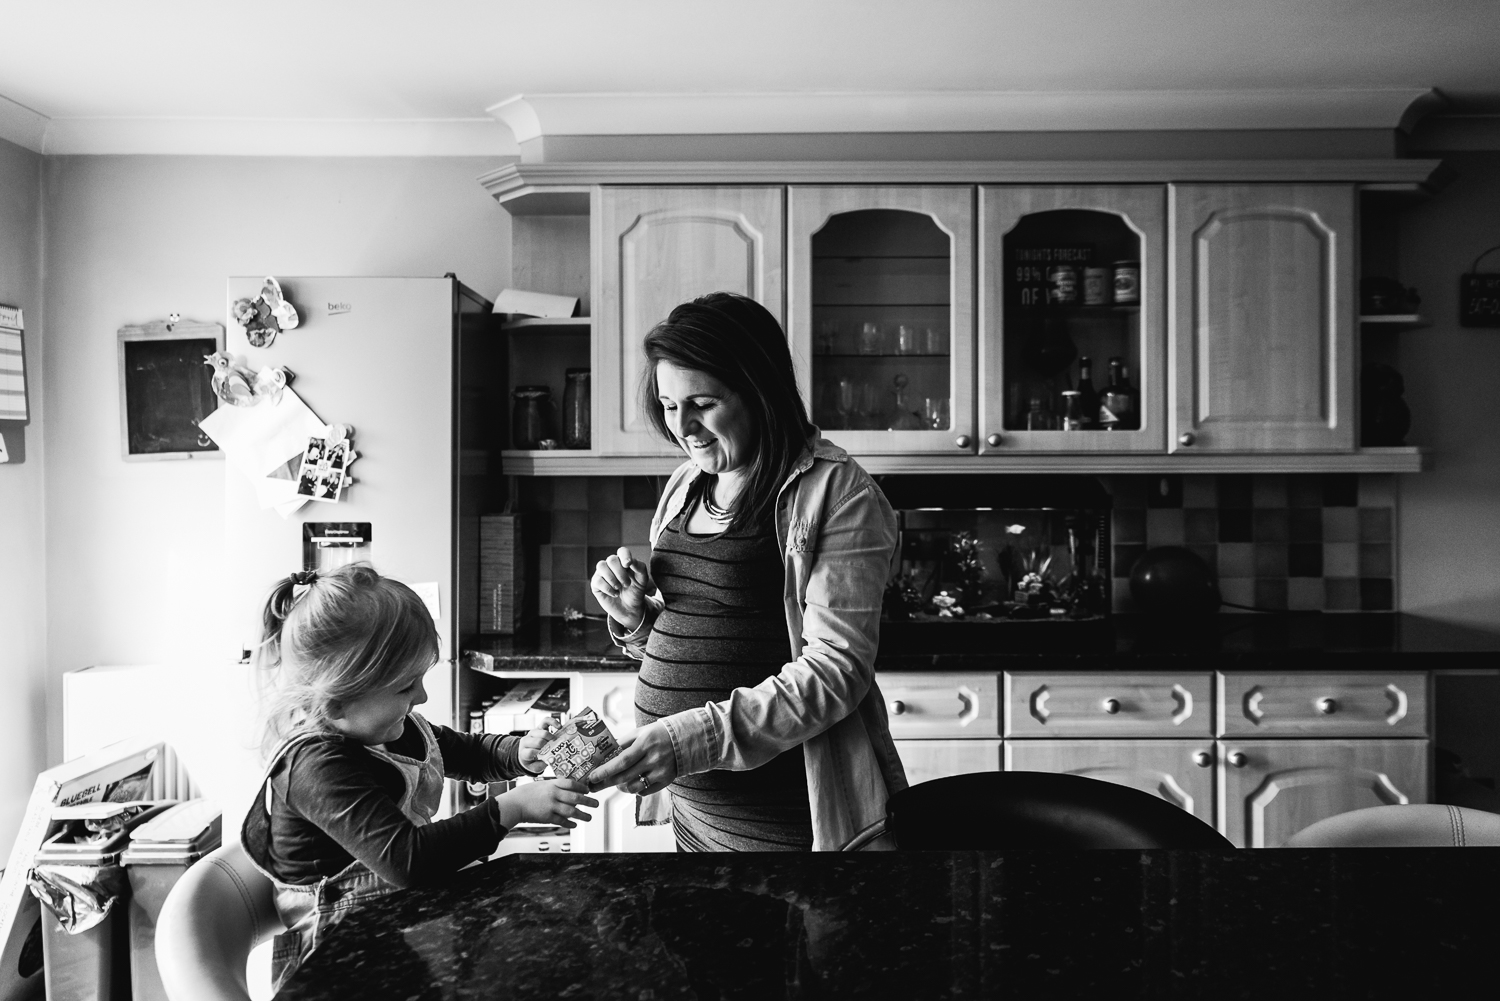 Mum and daughter in the kitchen